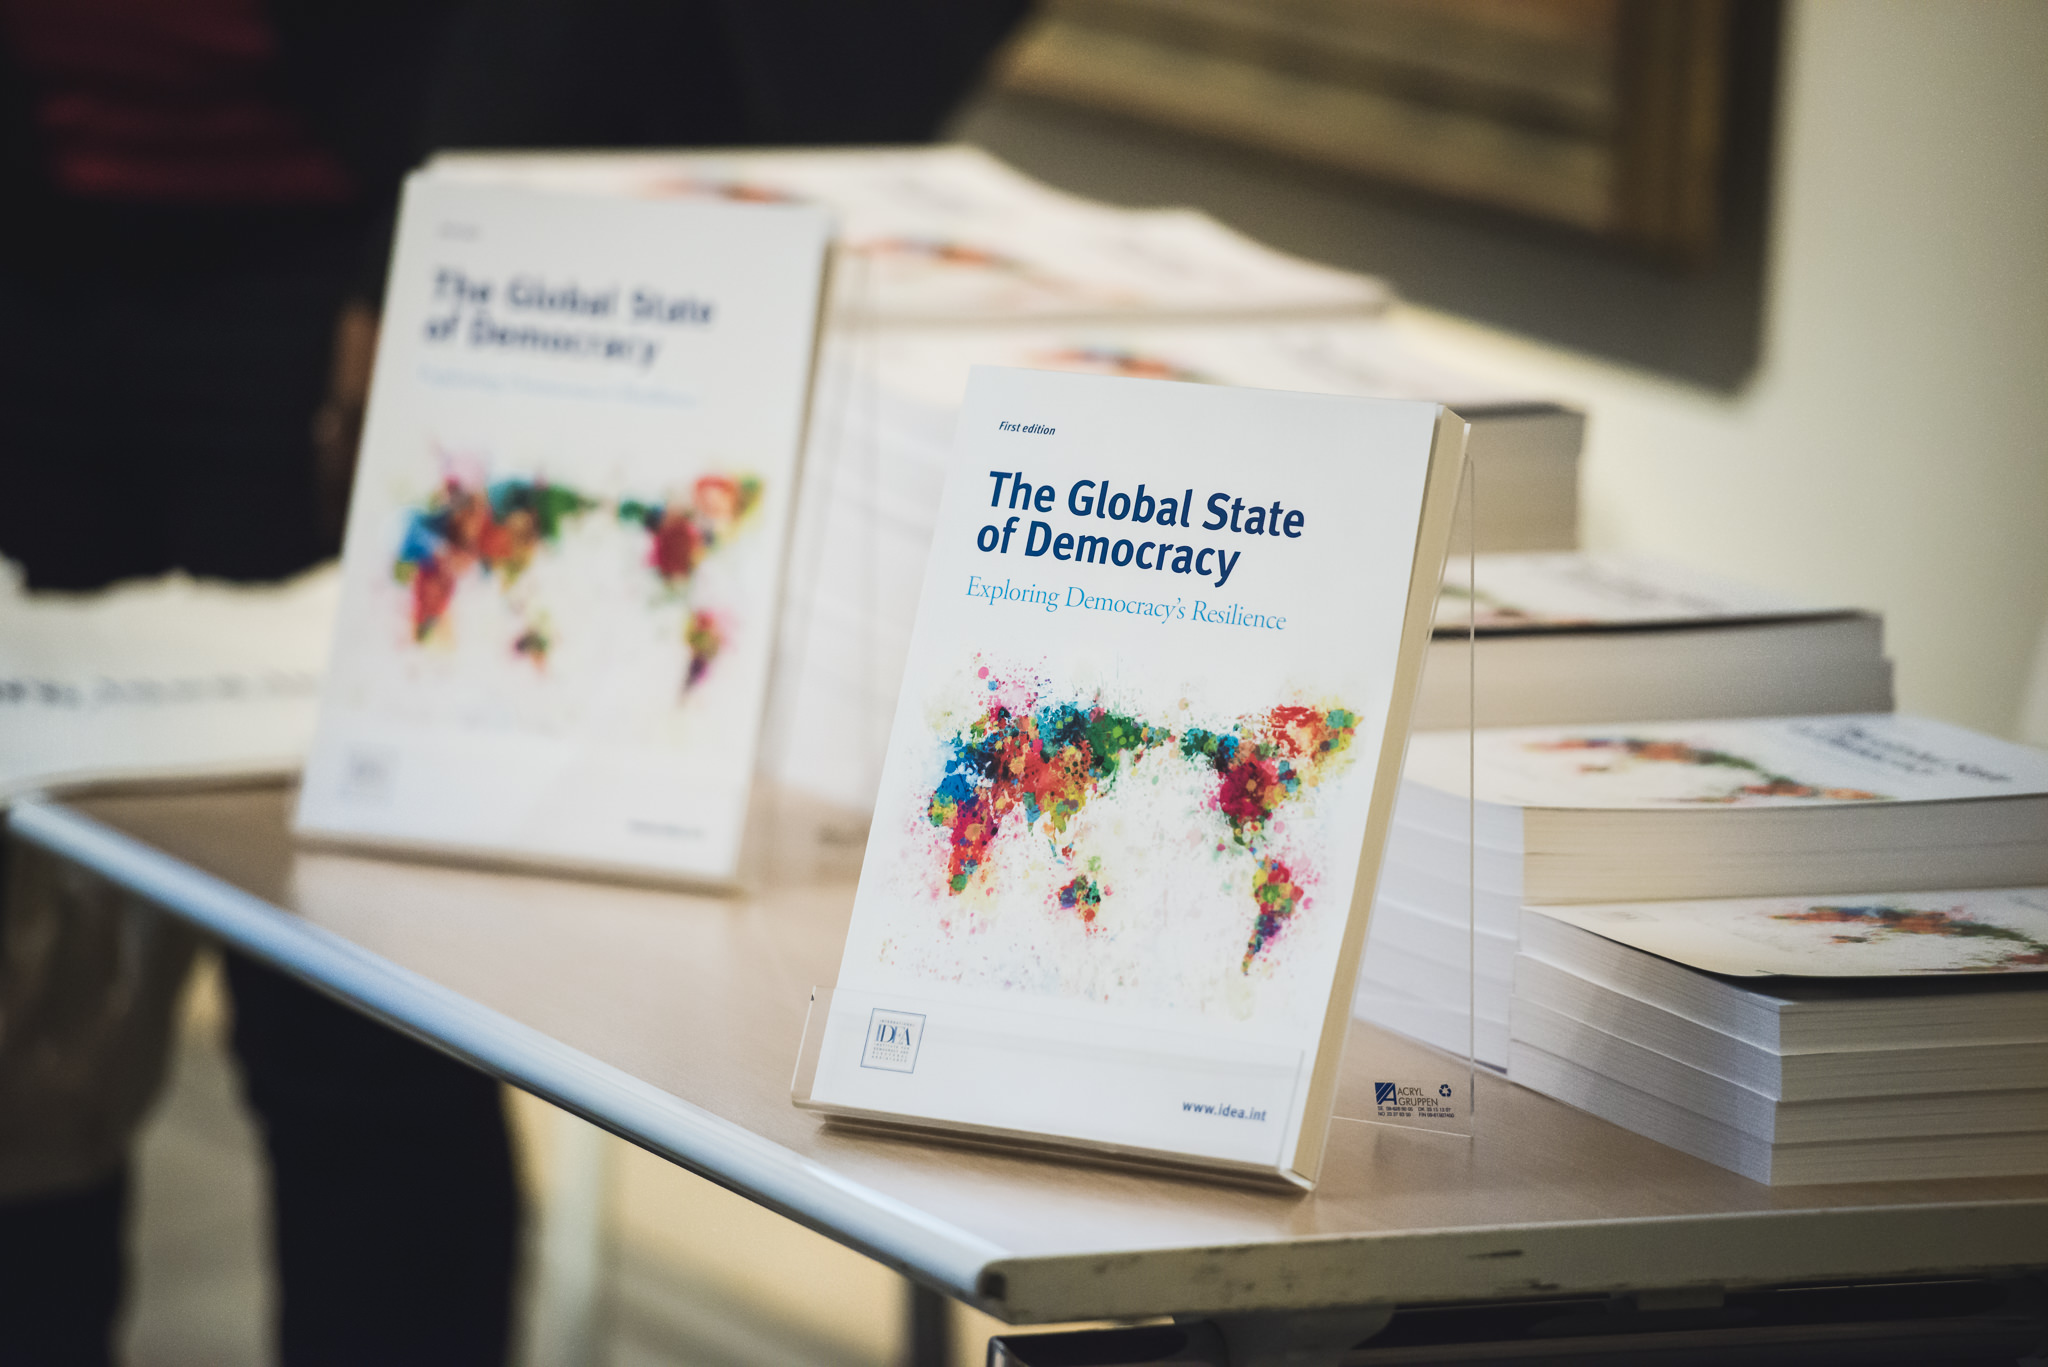 The Global State of Democracy. Image: International IDEA/Stuudio Huusmann